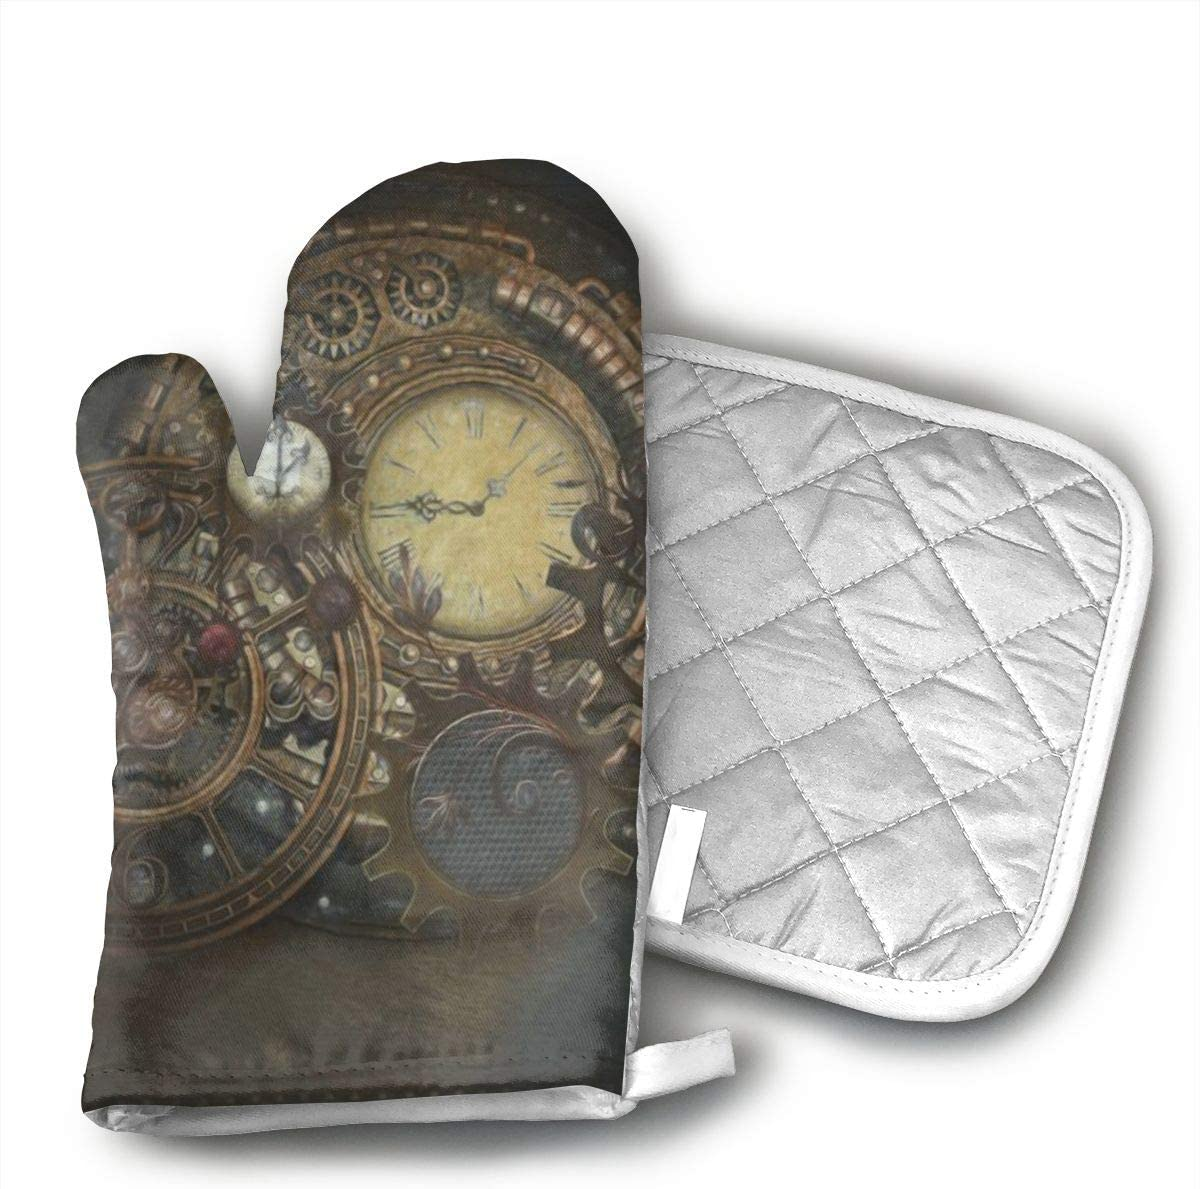 GRSTsys Steampunk Clocks Heat Insulation Gloves/Oven Mitts